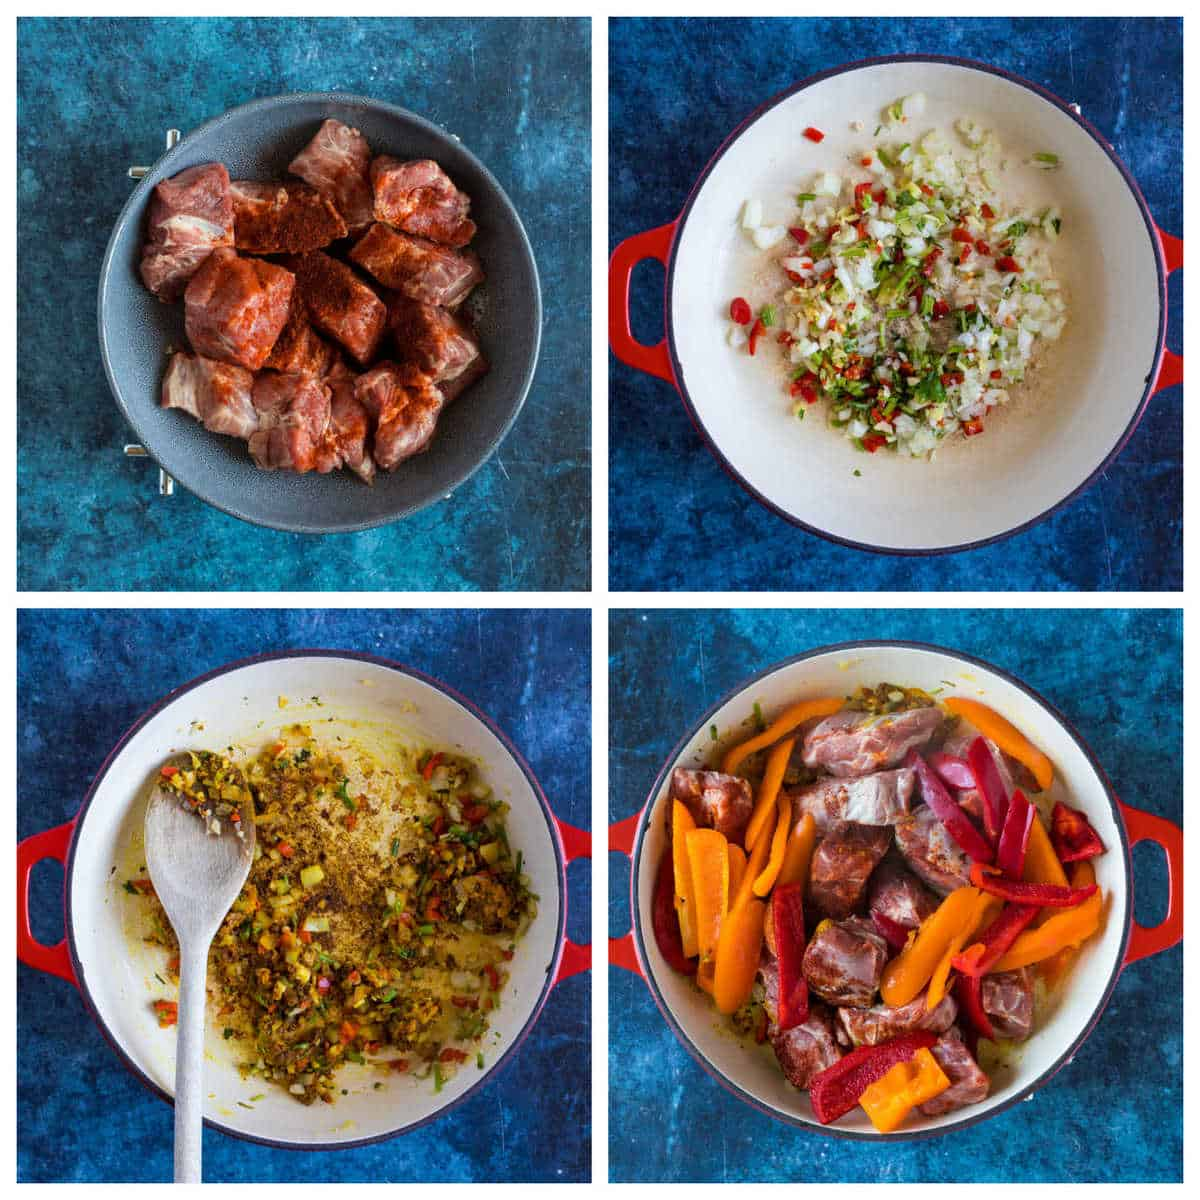 Step by step photo instructions for making easy lamb balti.